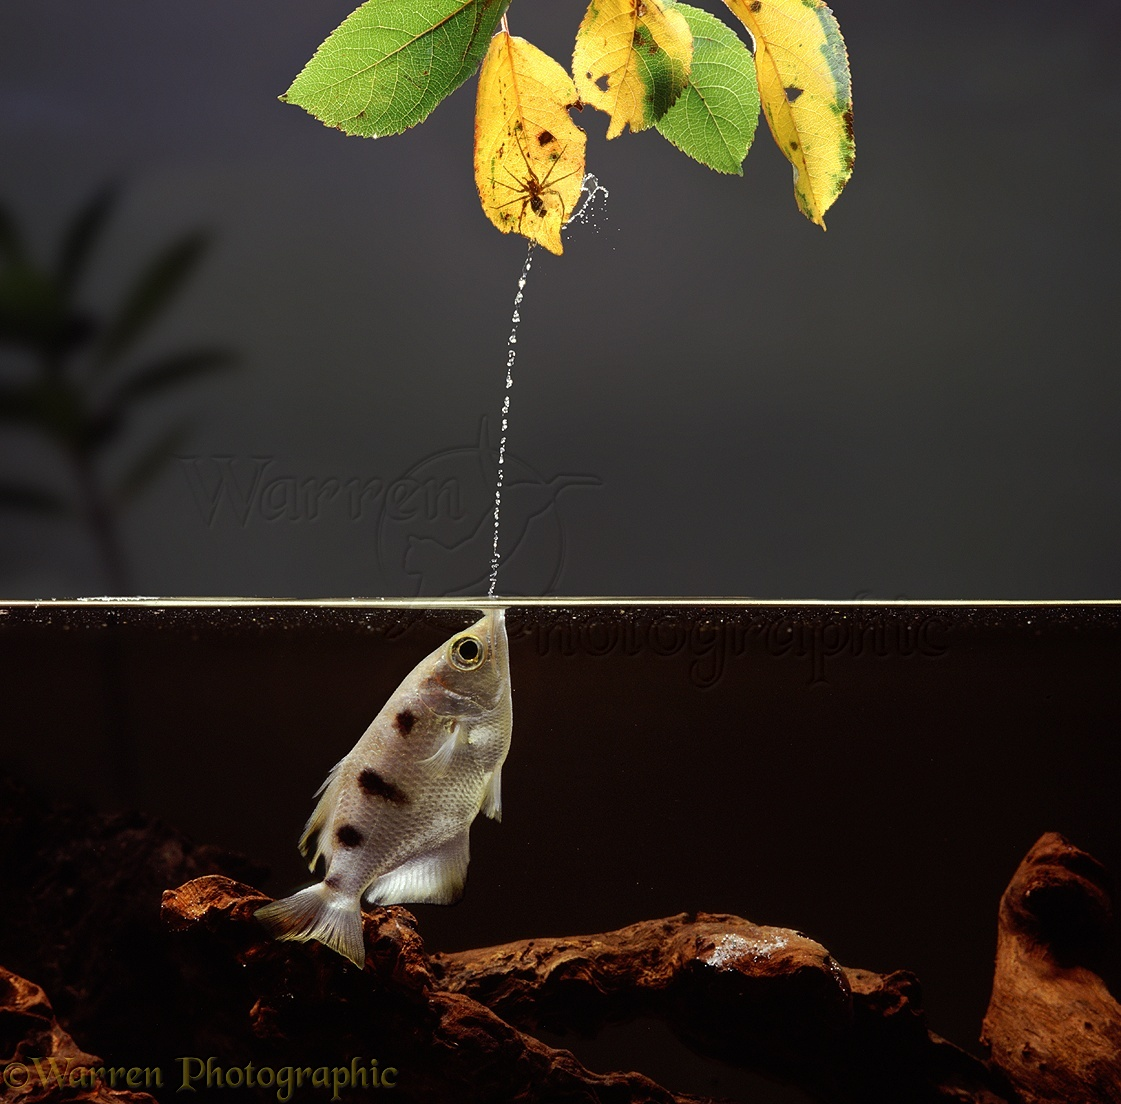 Archer Fish jetting at spider photo - WP05140